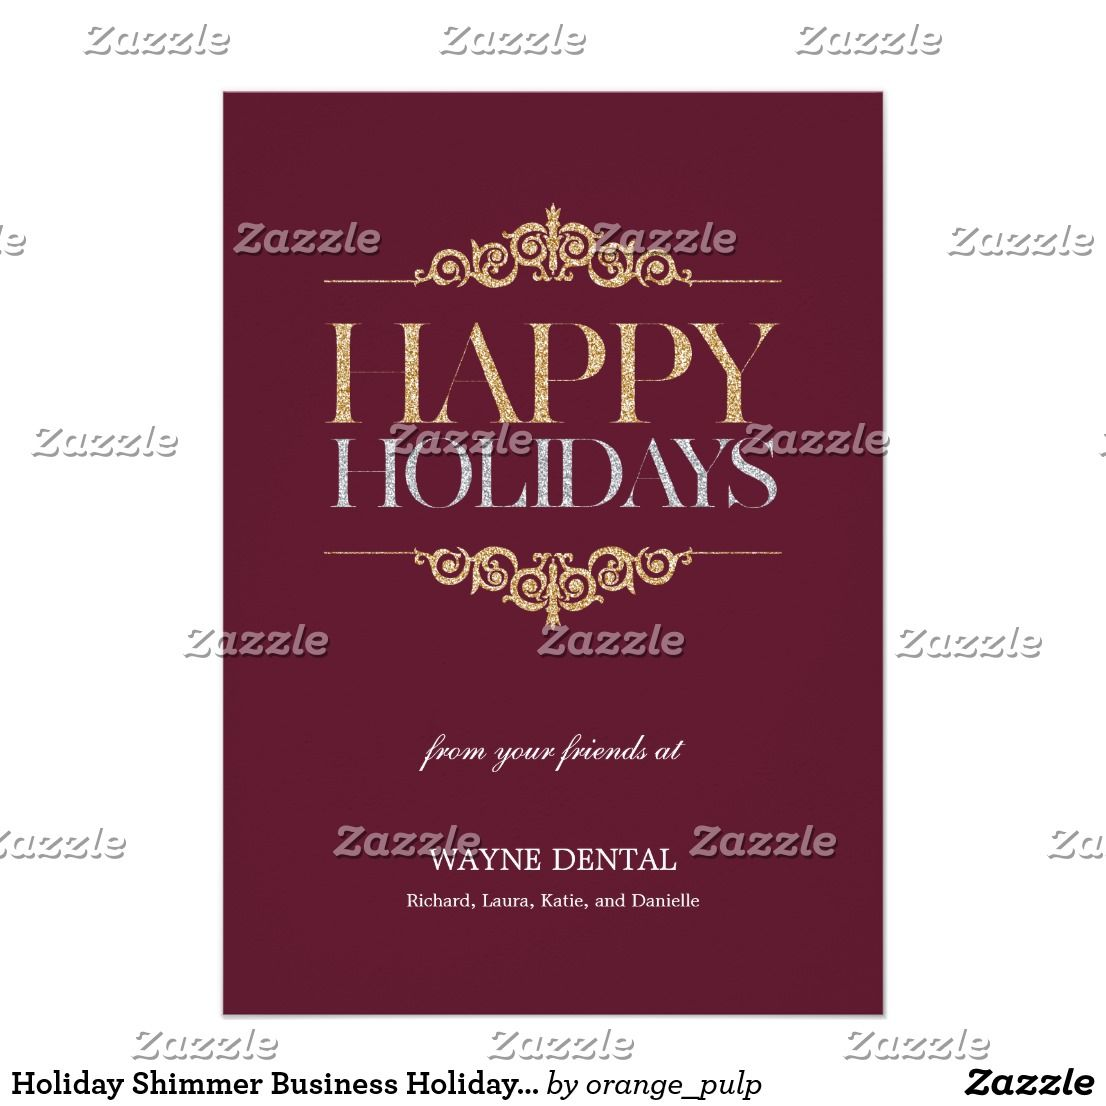 Holiday Shimmer Business Holiday Cards Maroon Business Holiday